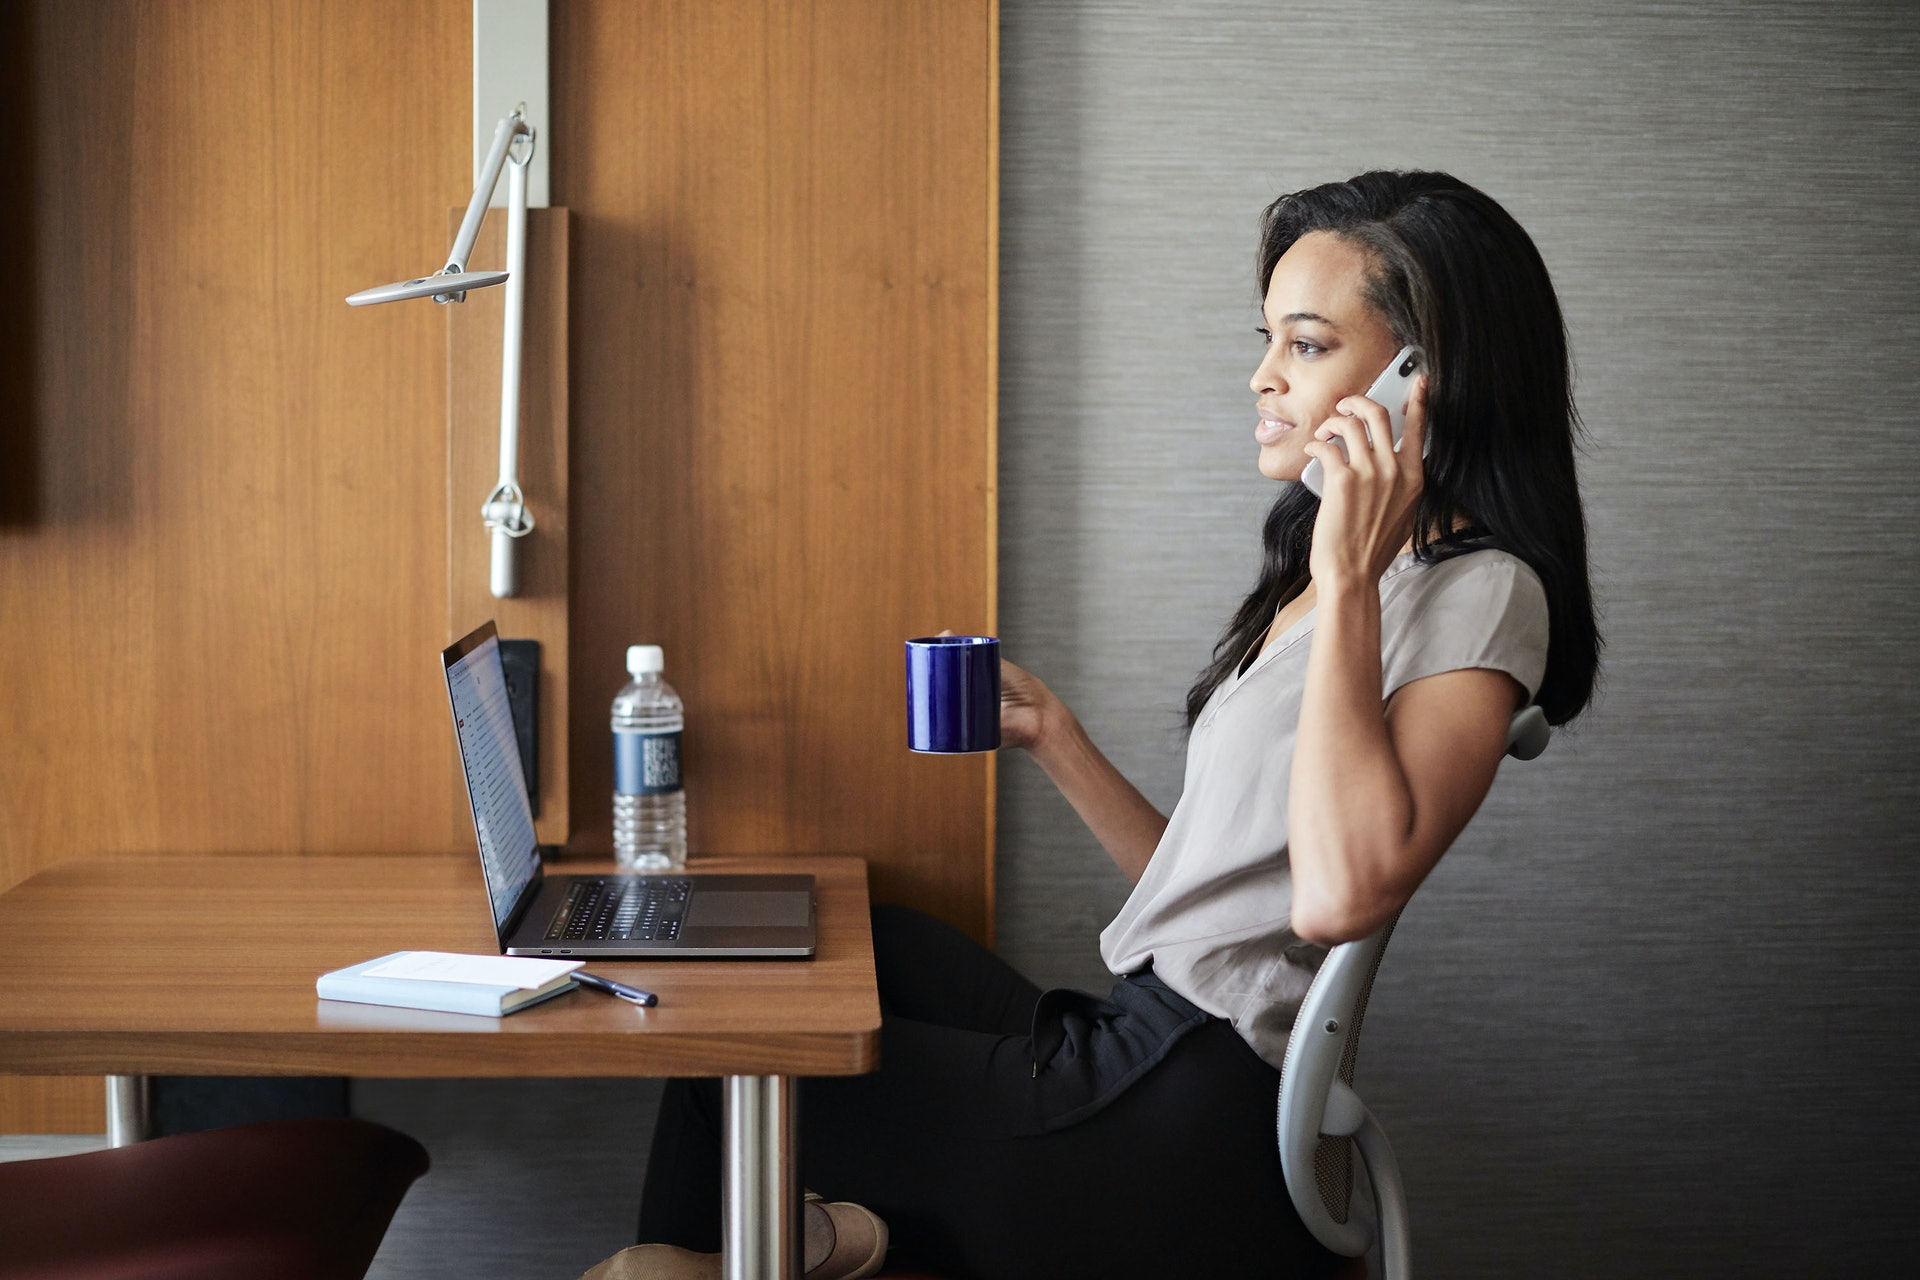 Girl talking on phone while working on laptop